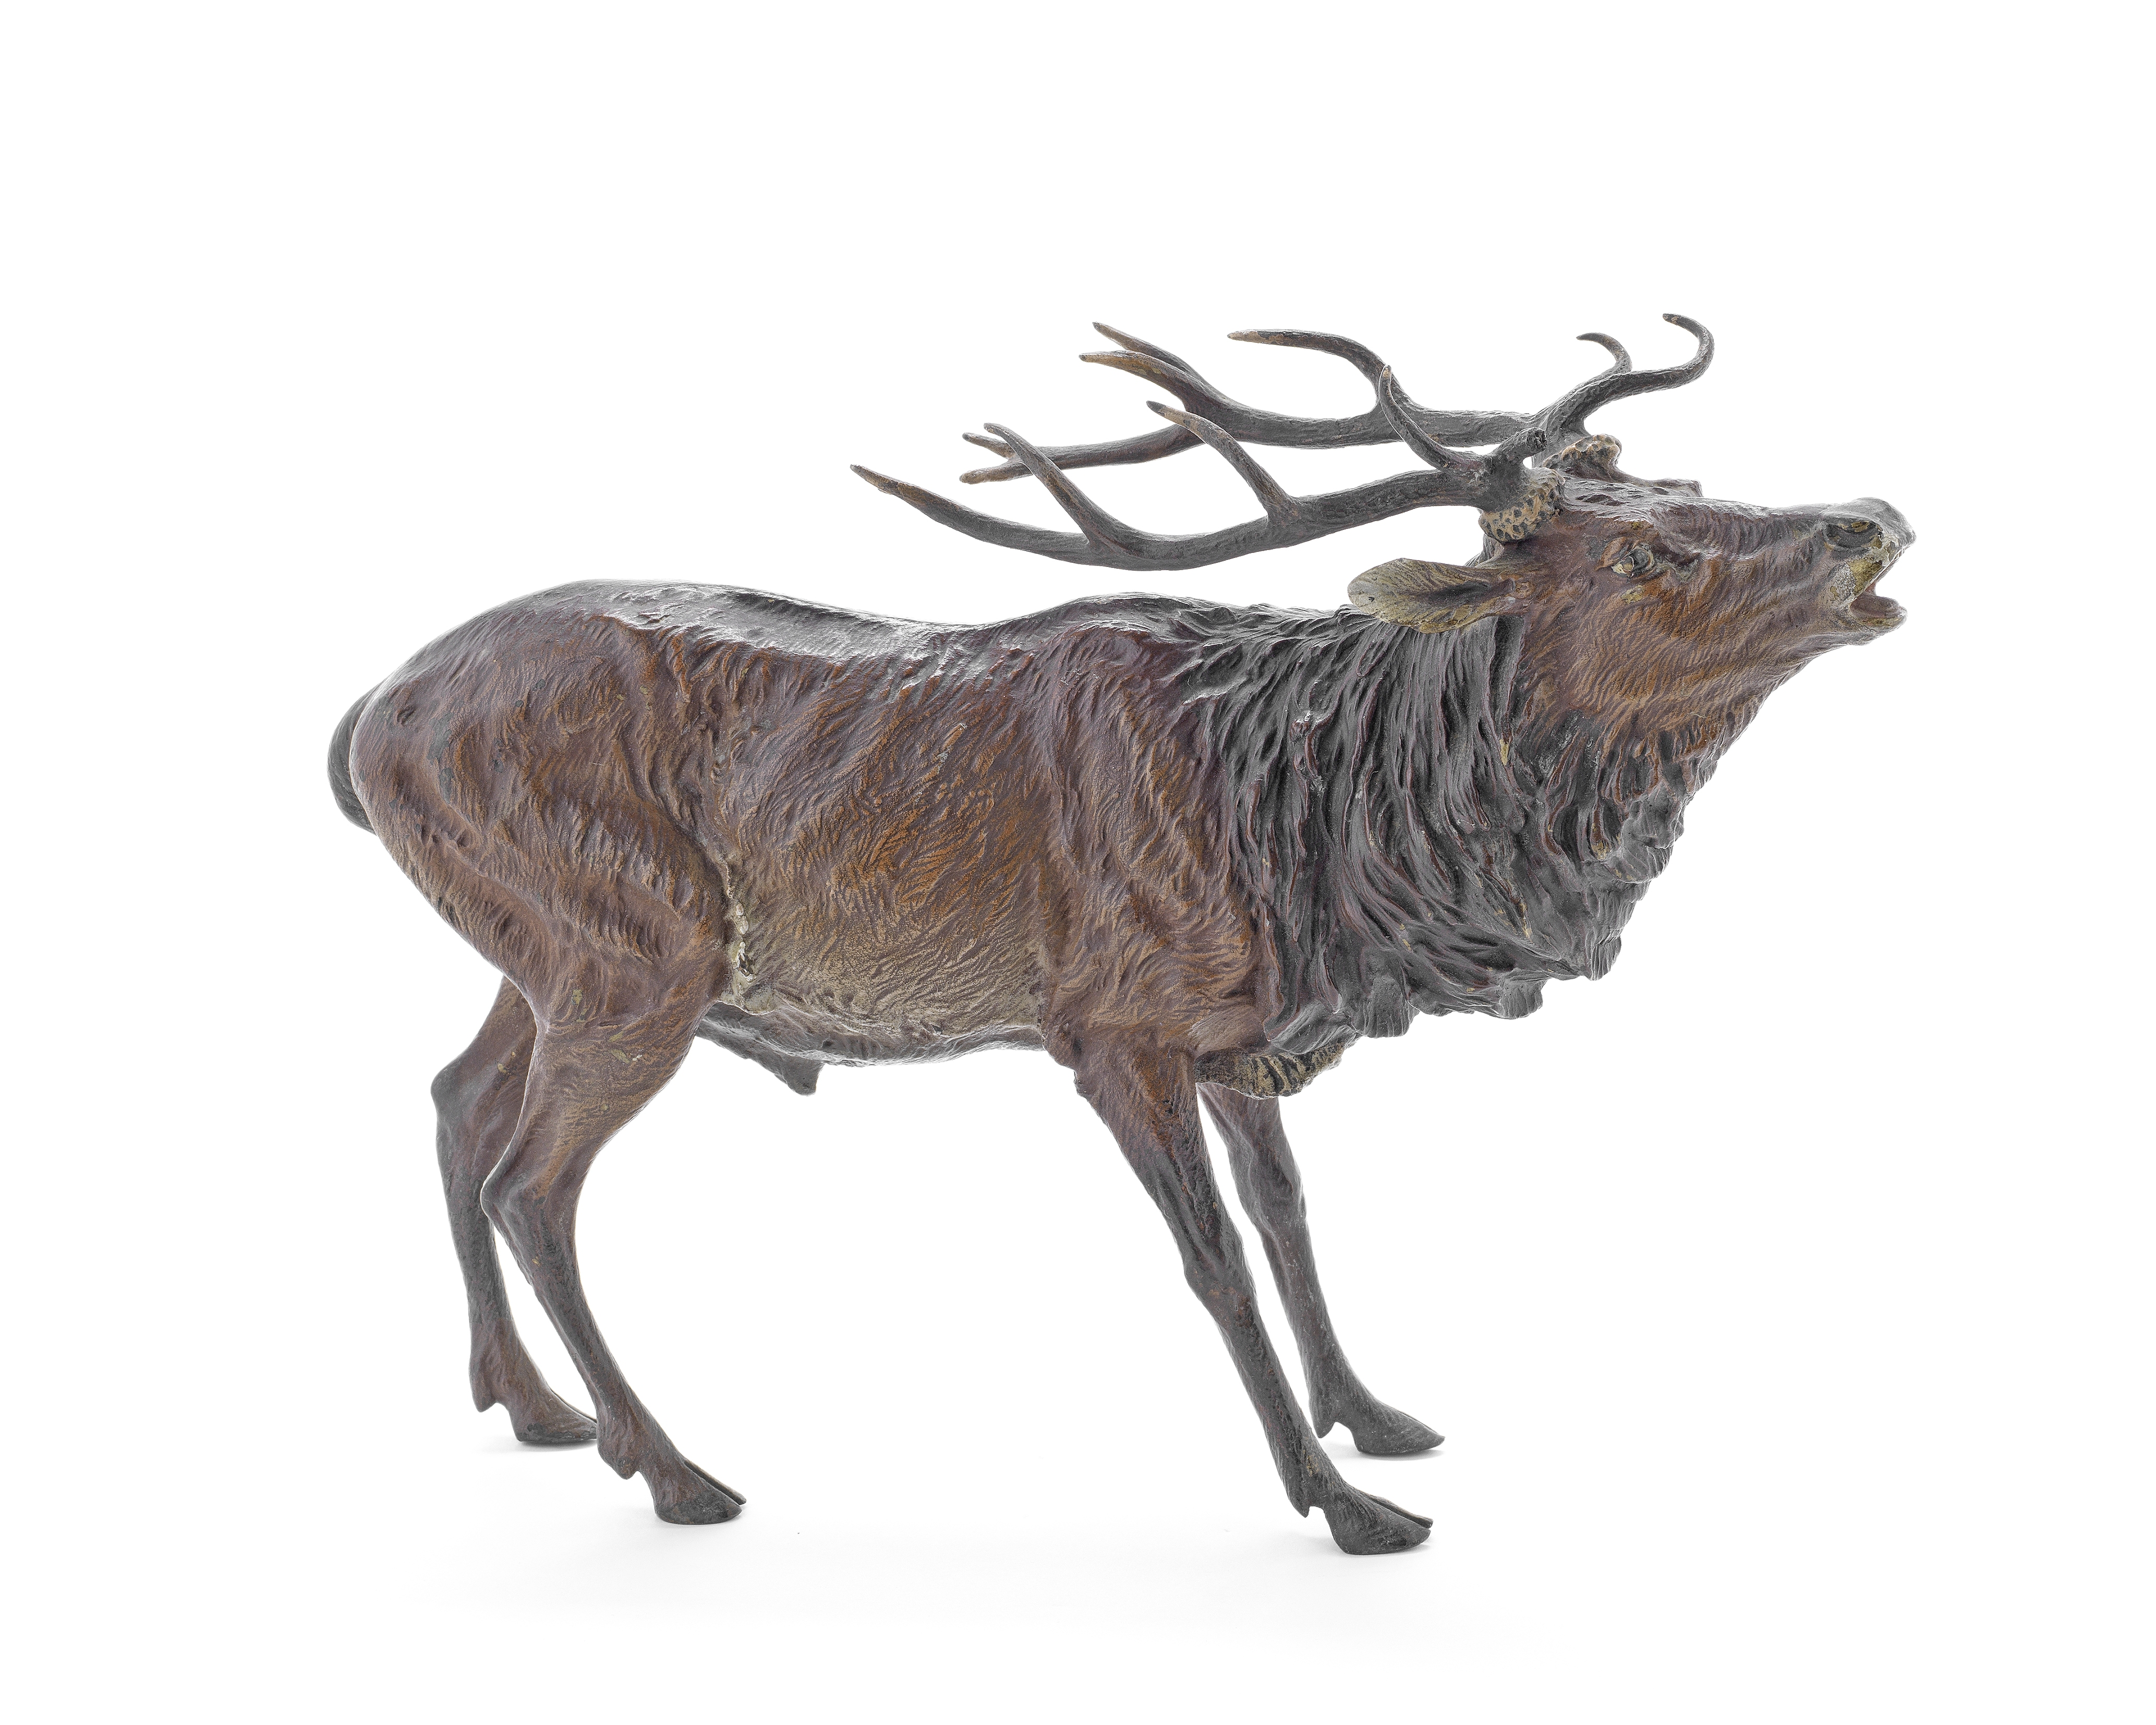 Franz Bergman (Austrian 1861-1936): A cold painted bronze model of a stag